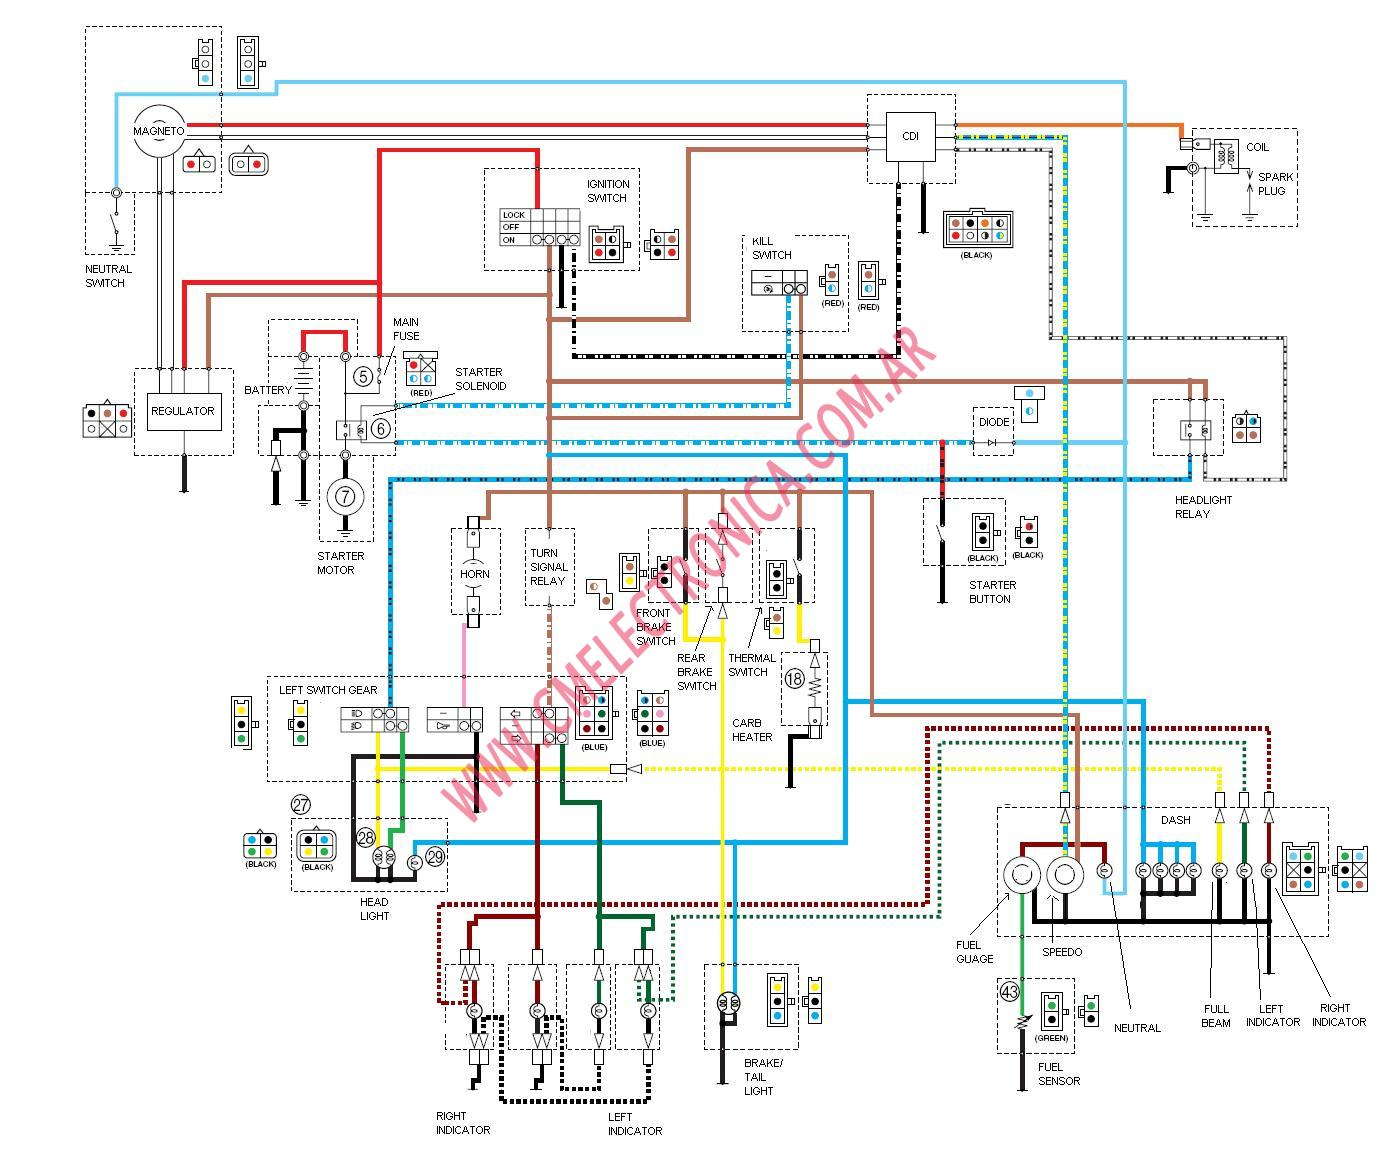 wiring diagram for can am spyder  wiring  get free image